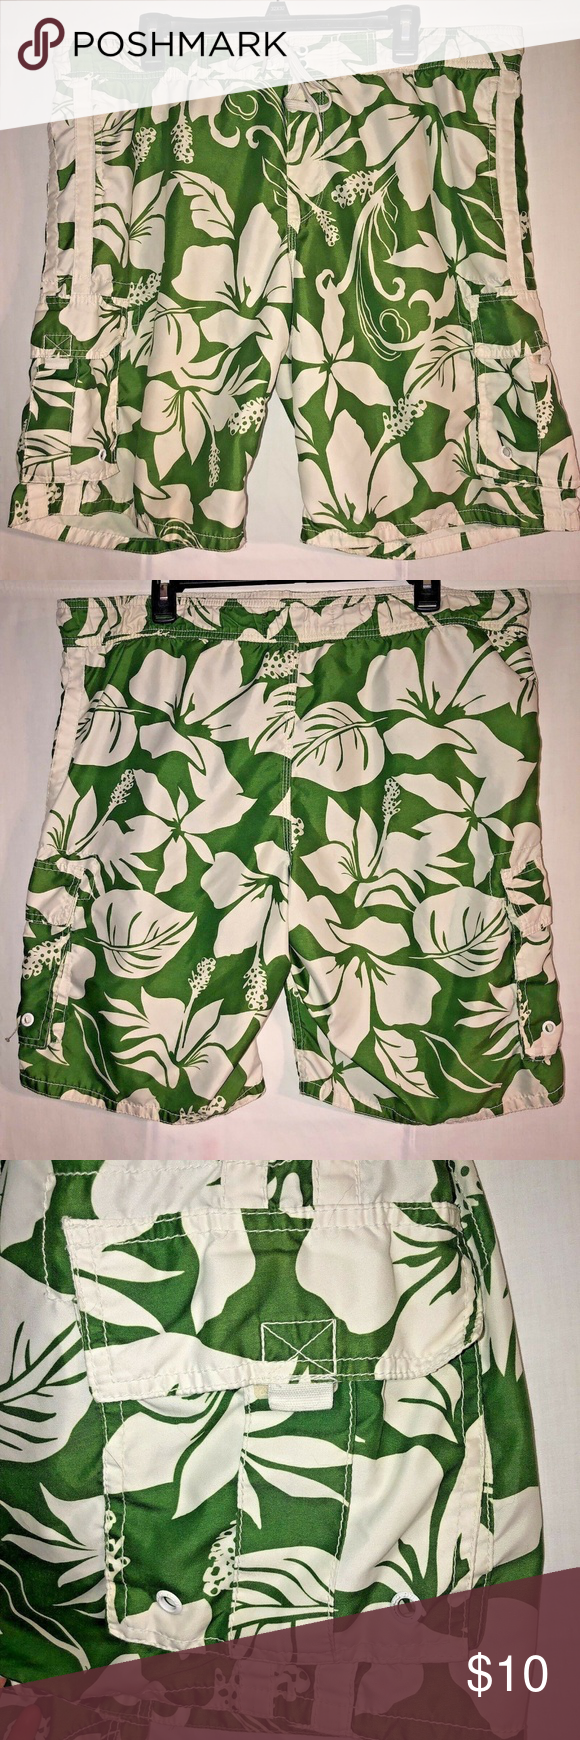 2324b0c8ff Old Navy Men Board Shorts Large Swim Trunks Lined Great condition Old Navy  Men's Board Shorts/Swim Trunks, size Large. Green with white floral pattern.